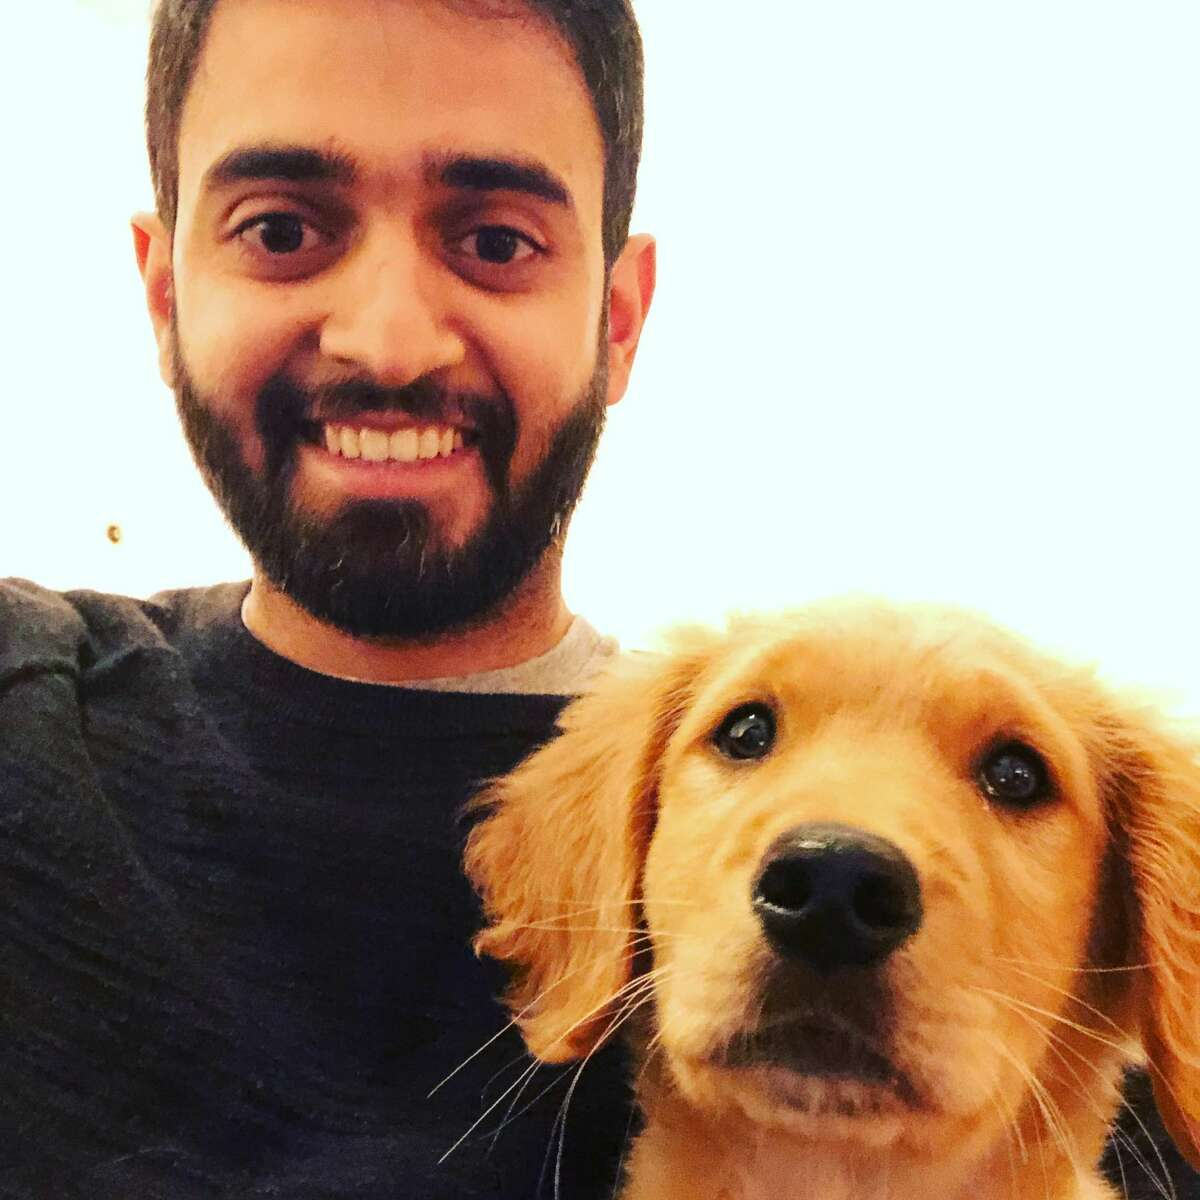 While the cost of owning a dog in San Francisco can range from a few hundred to a few thousand dollars a month, not one dog owner I spoke to said it wasn't worth it. Just make sure you're financially secure enough first. Pictured: Buster and his owner Nitin Rao.